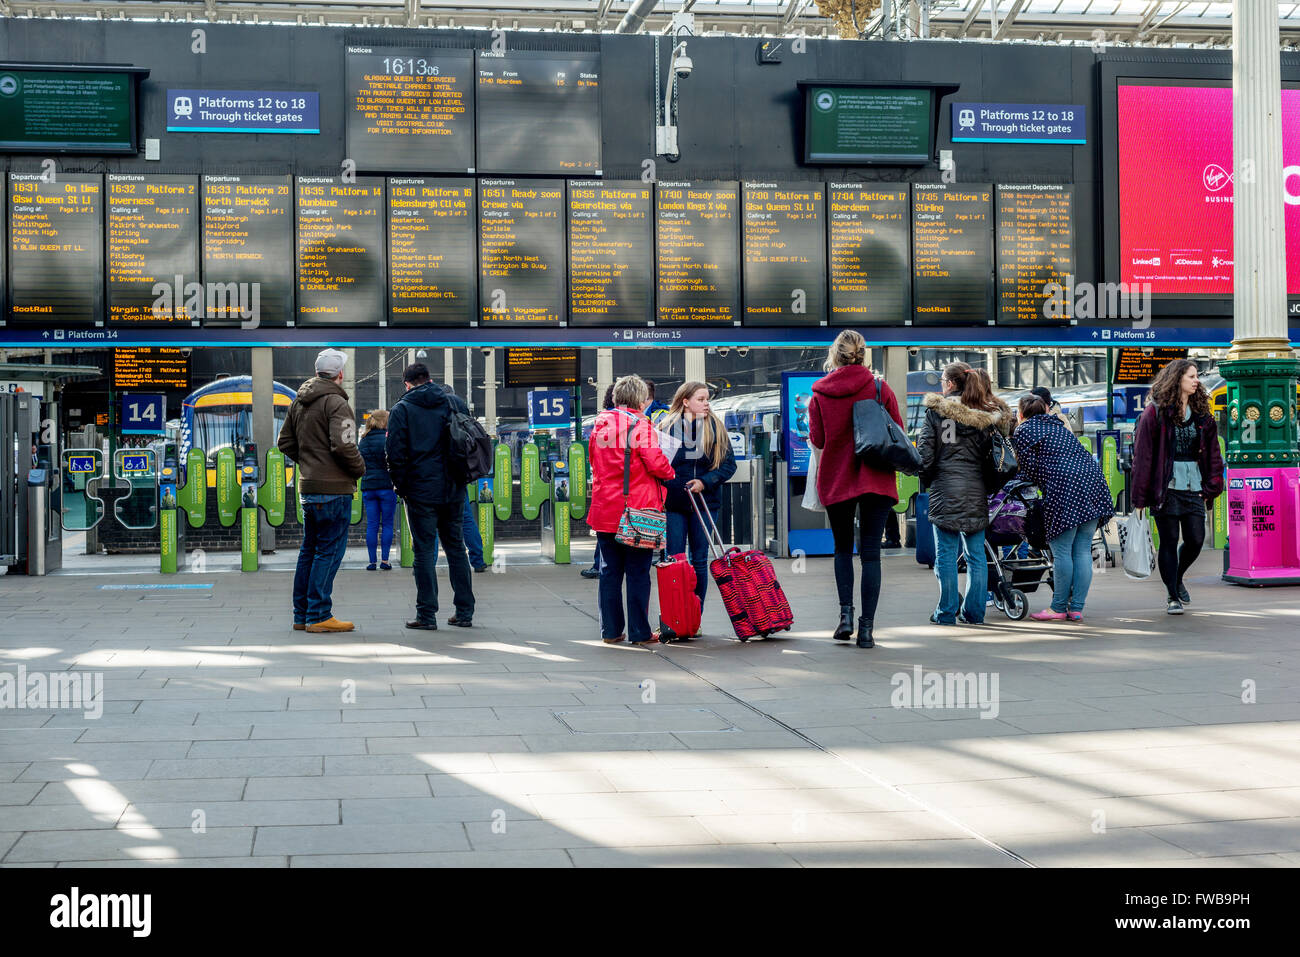 Commuters at Edinburgh Waverley railway station in Scotland - Stock Image